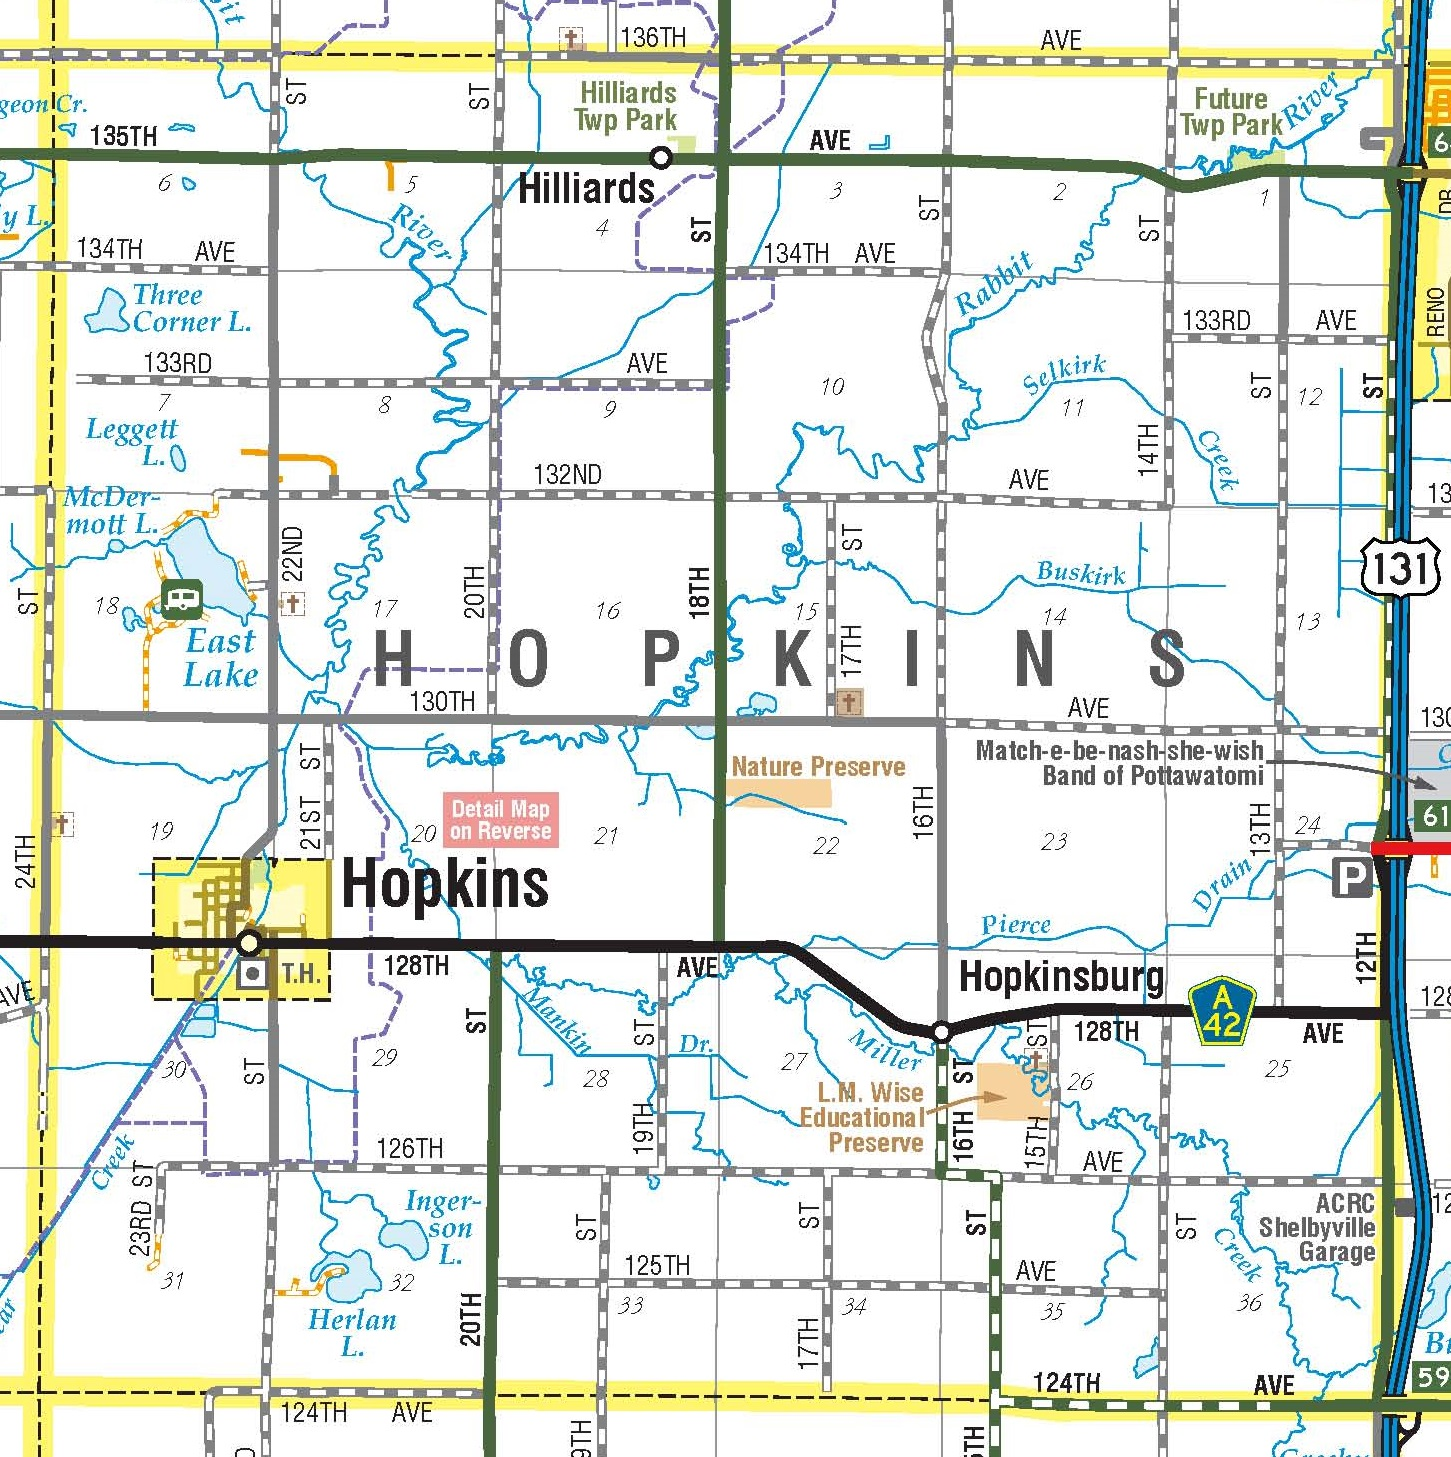 Township Maps Allegan County Road Commission